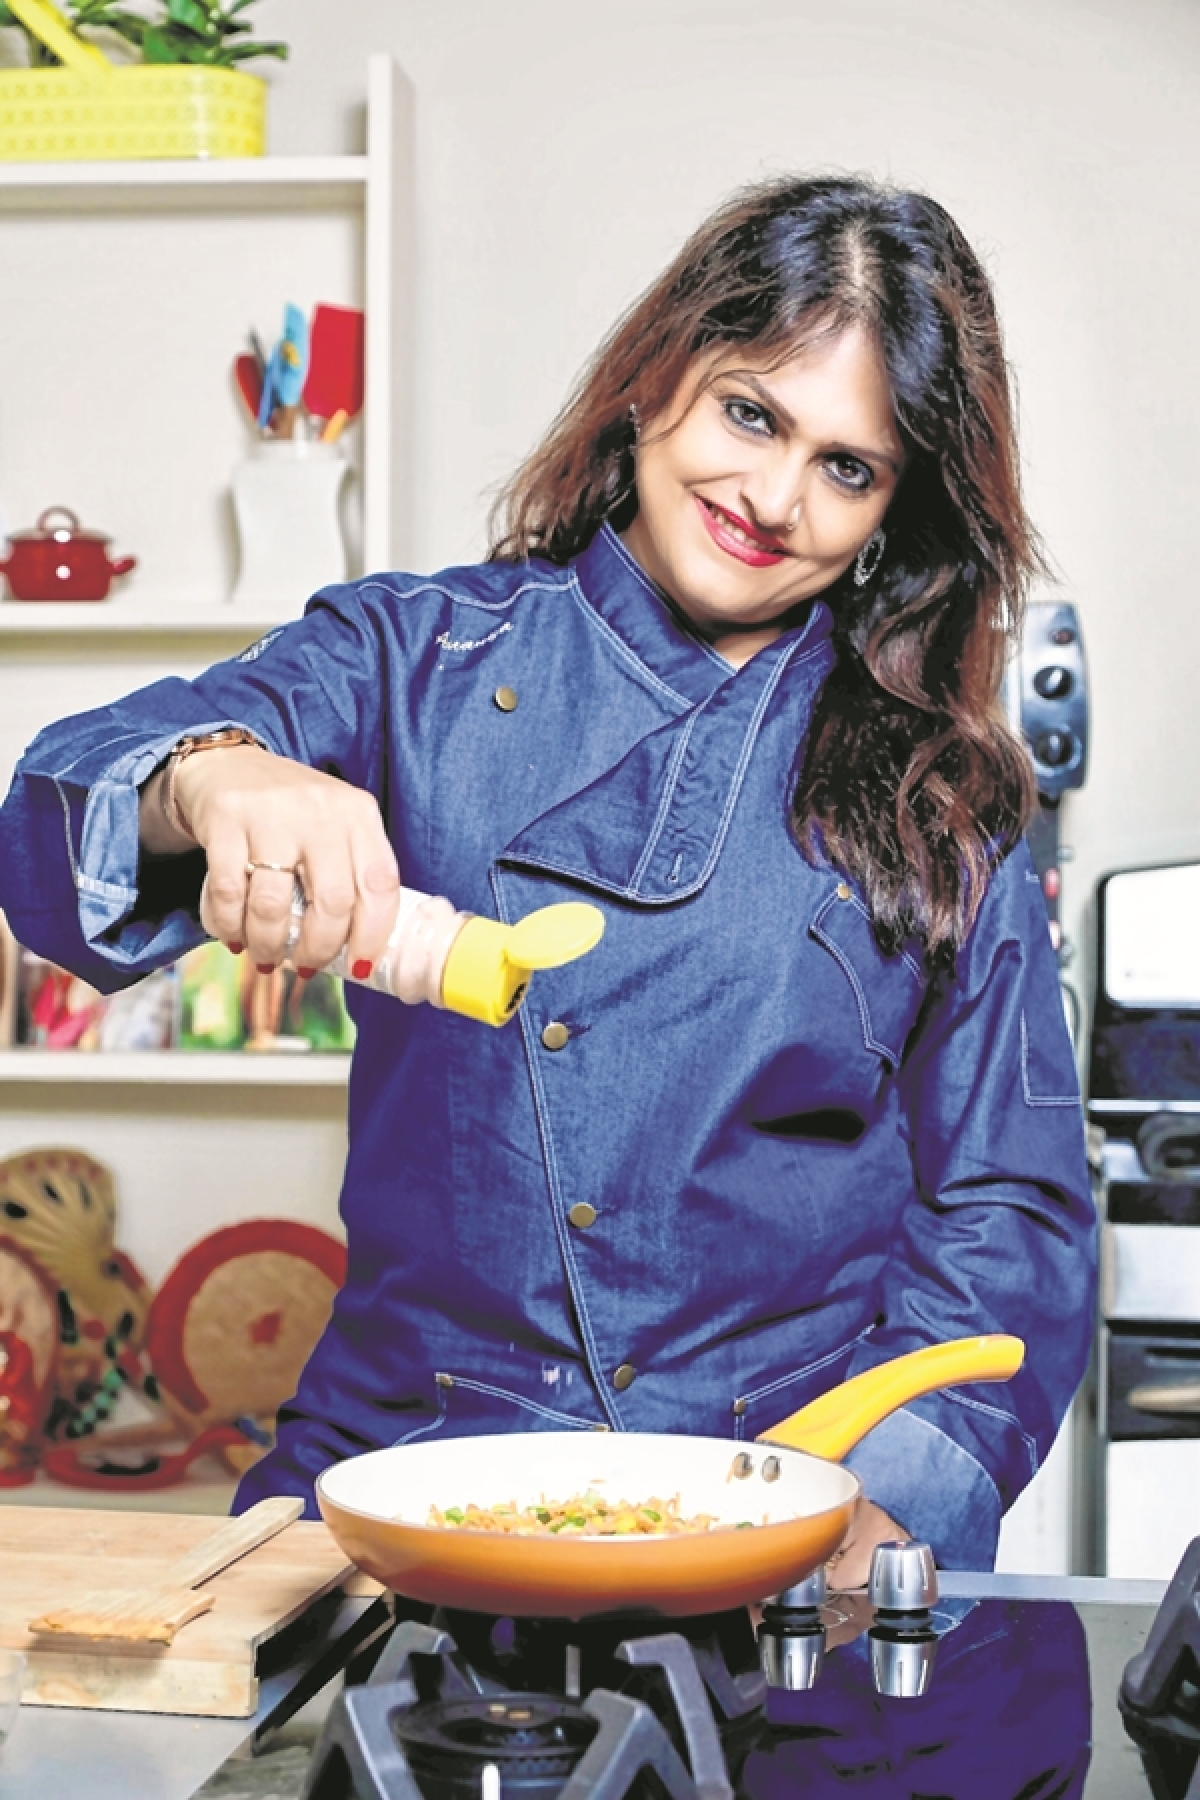 'Khichdi is the most comforting food for me': Celebrity chef Ananya Banerjee